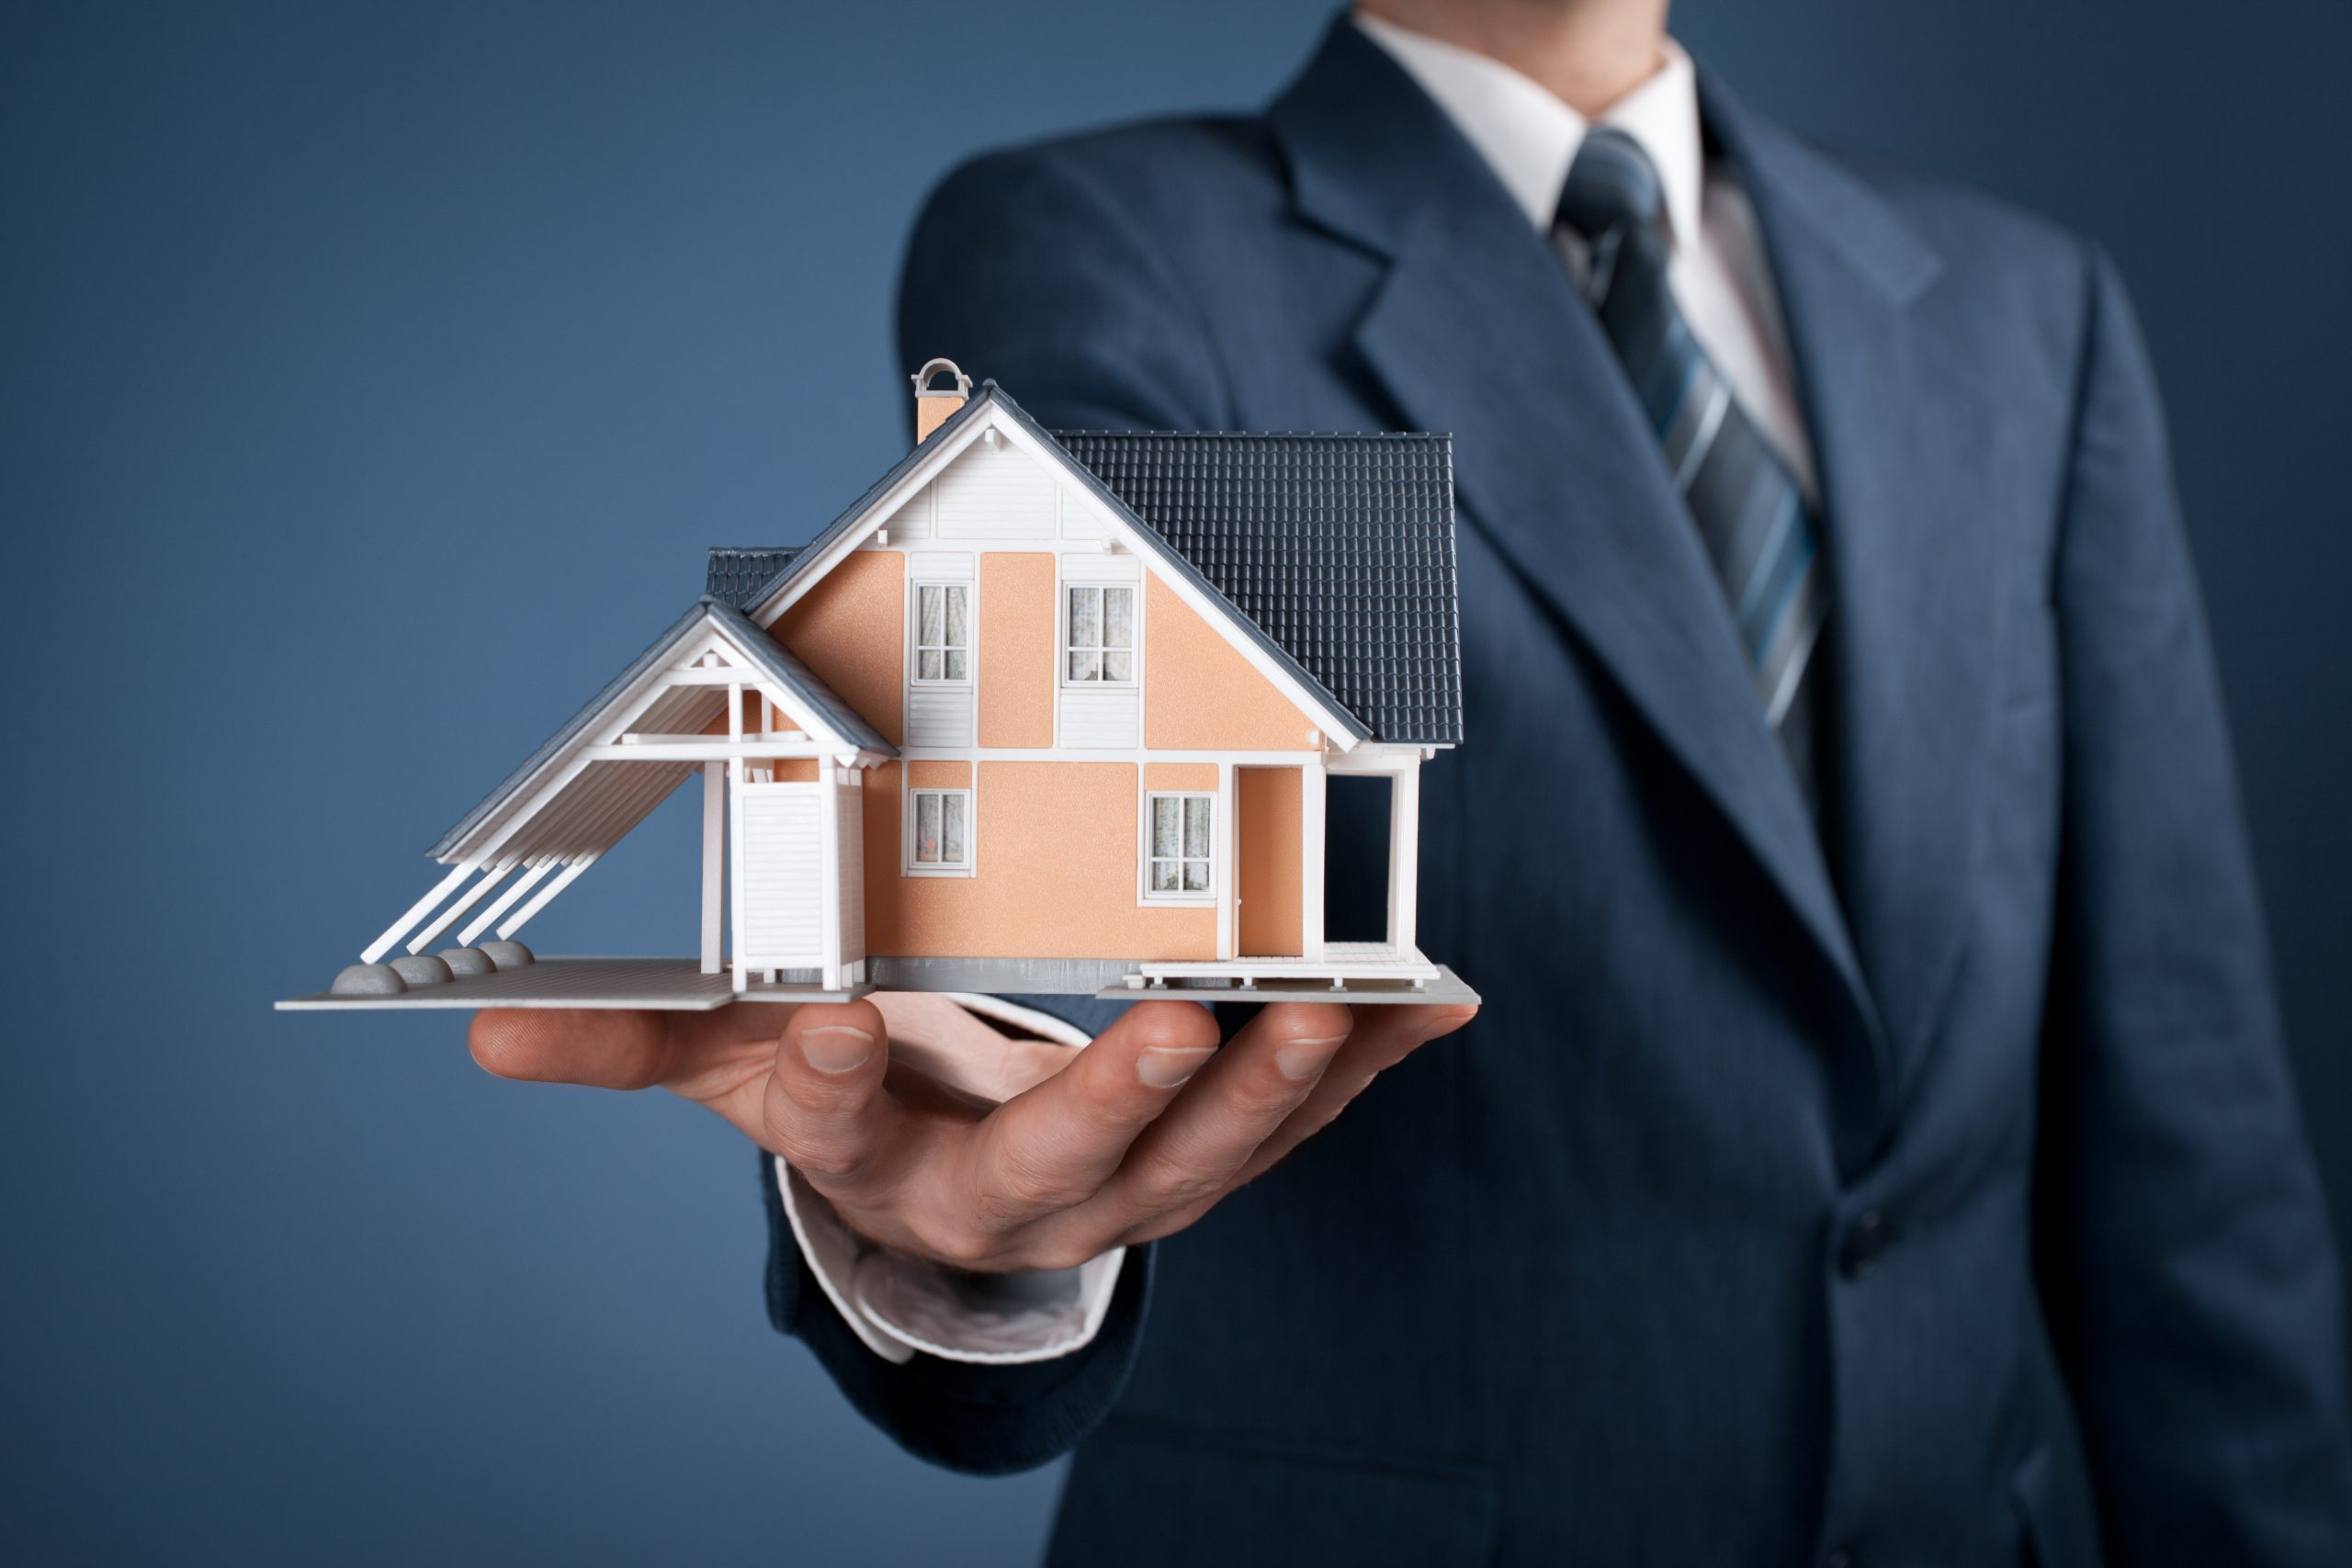 Dual-Representation-In-Mortgage-Industry